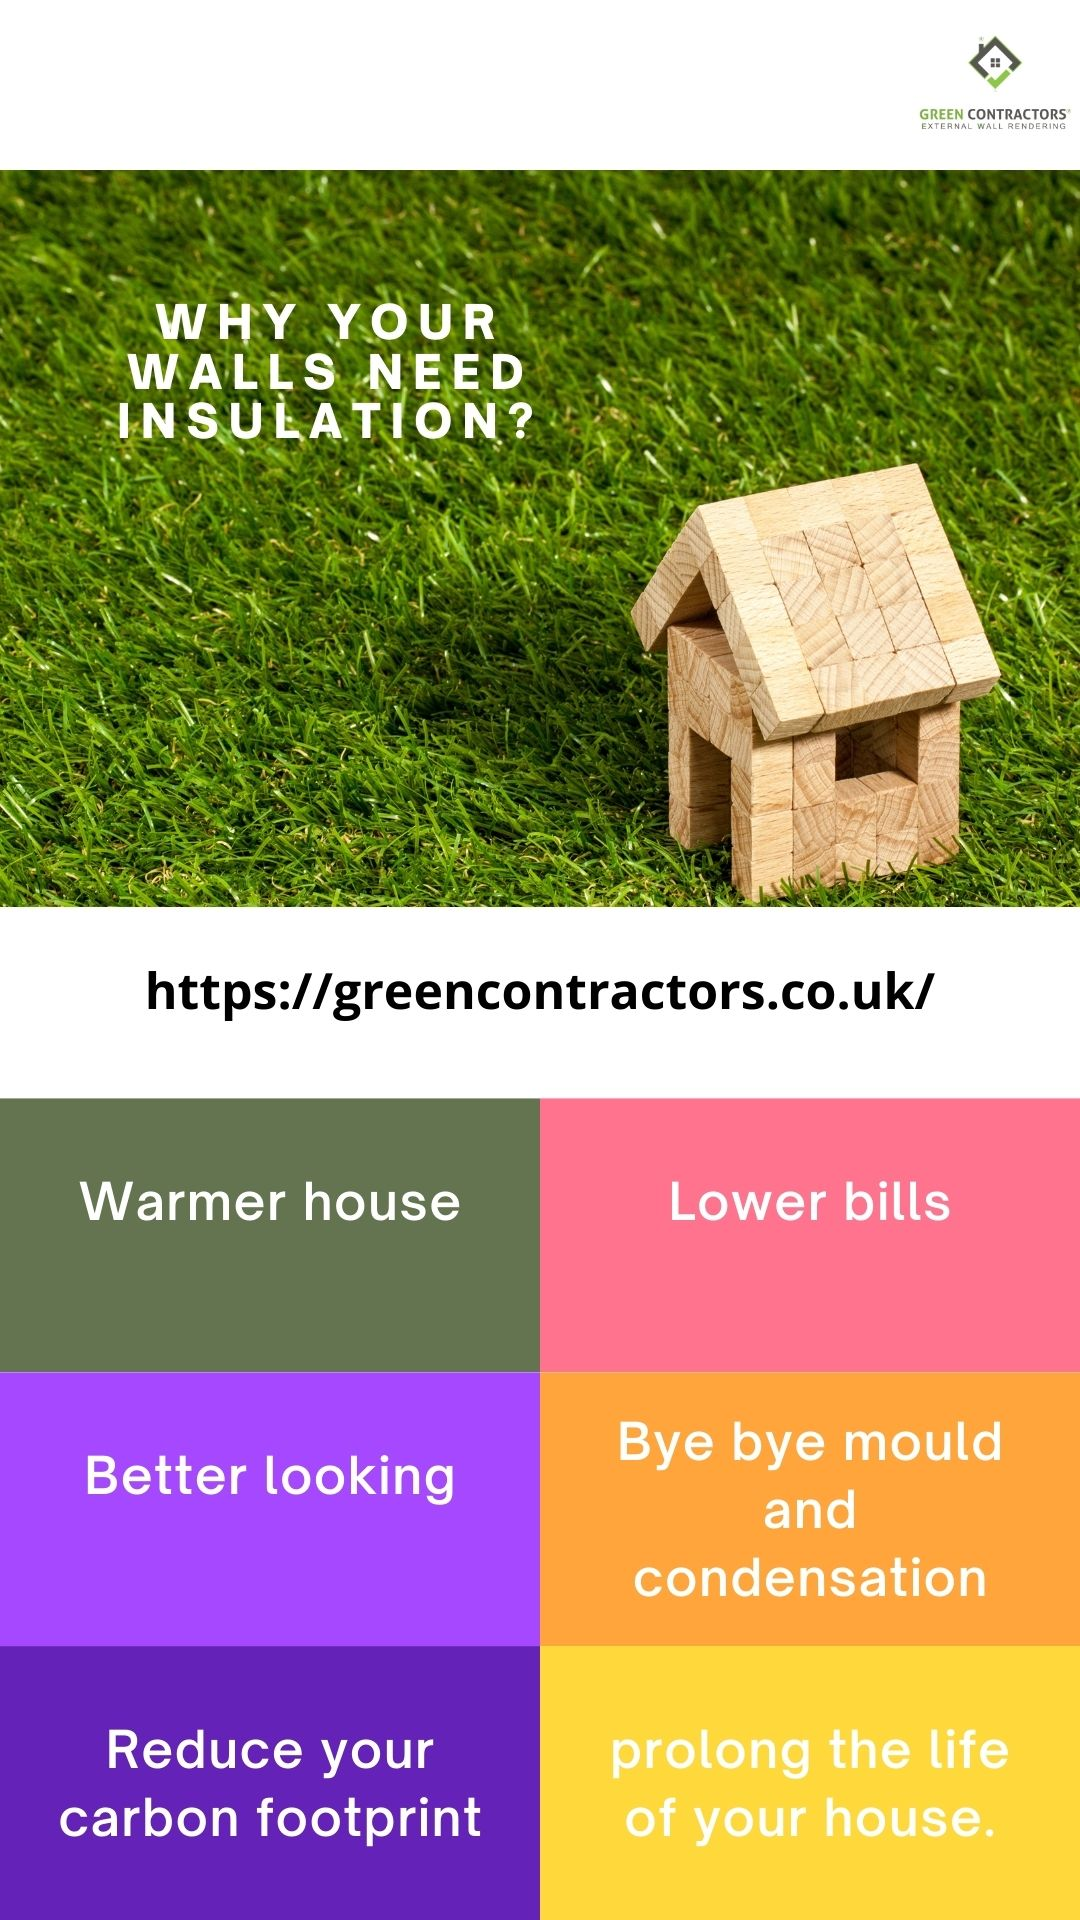 Why your walls need insulation